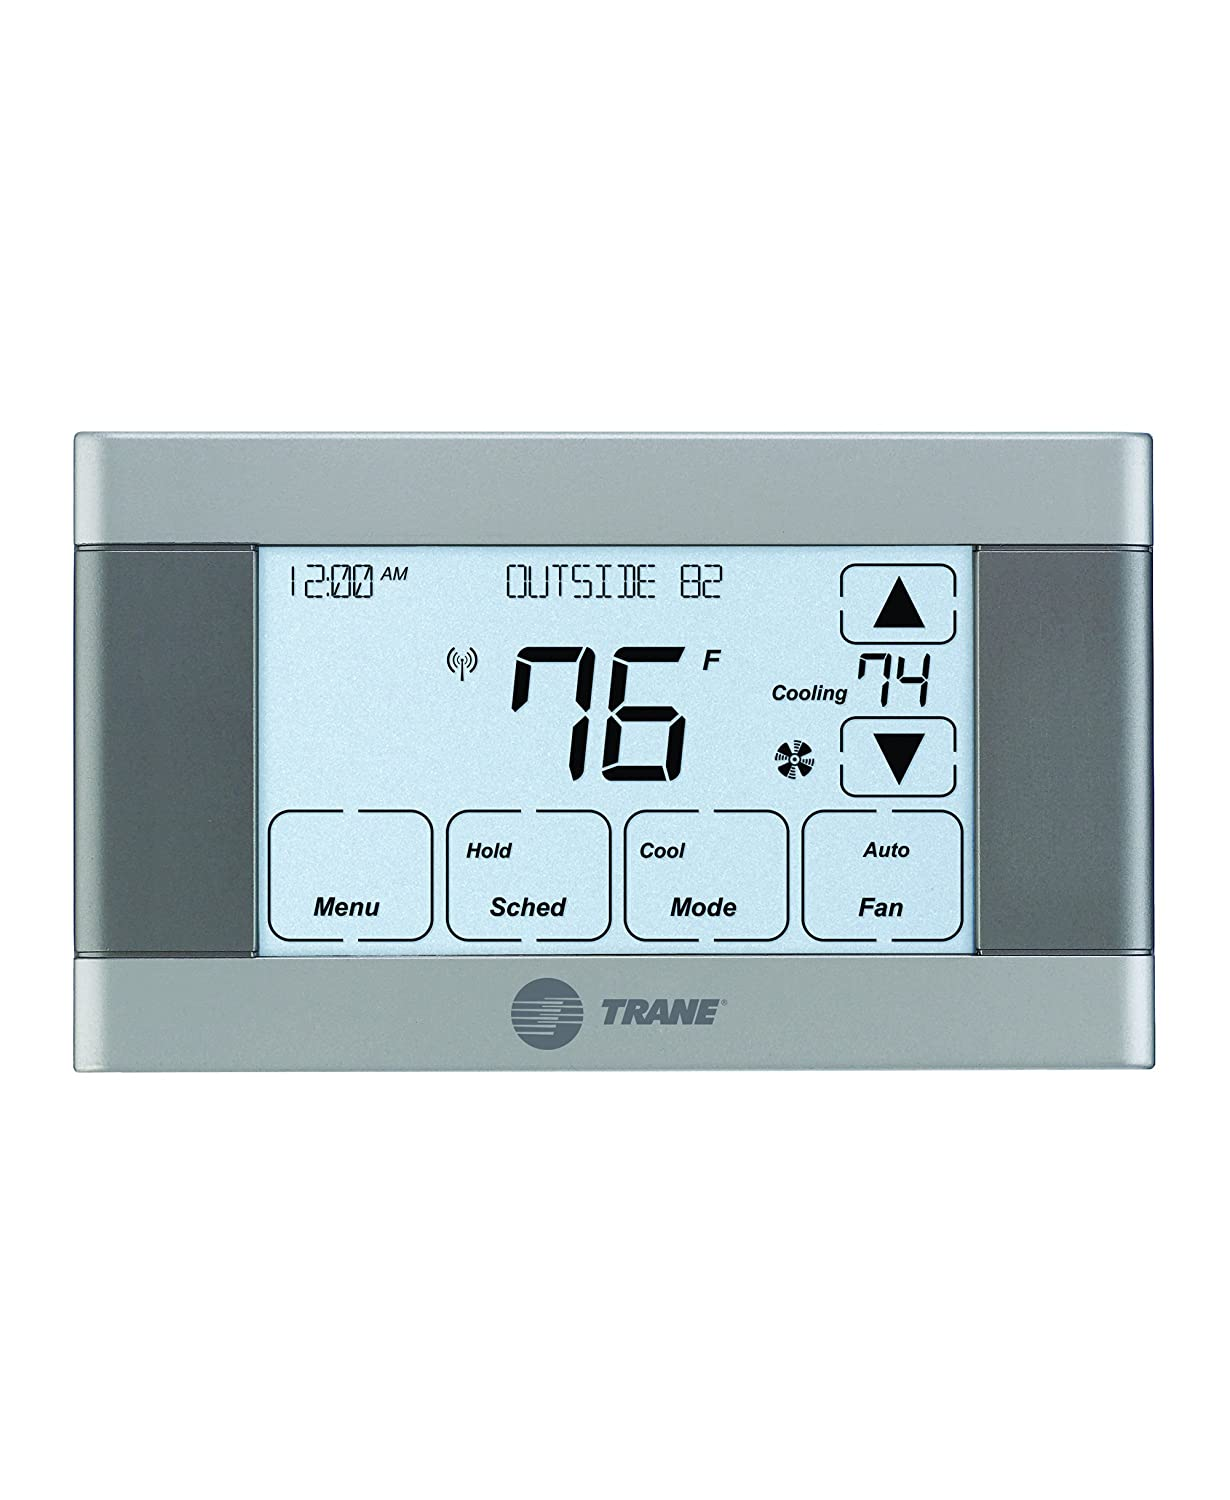 Trane XL624 - Nexia Home Automation Z-Wave Thermostat by Trane: Amazon.es: Bricolaje y herramientas